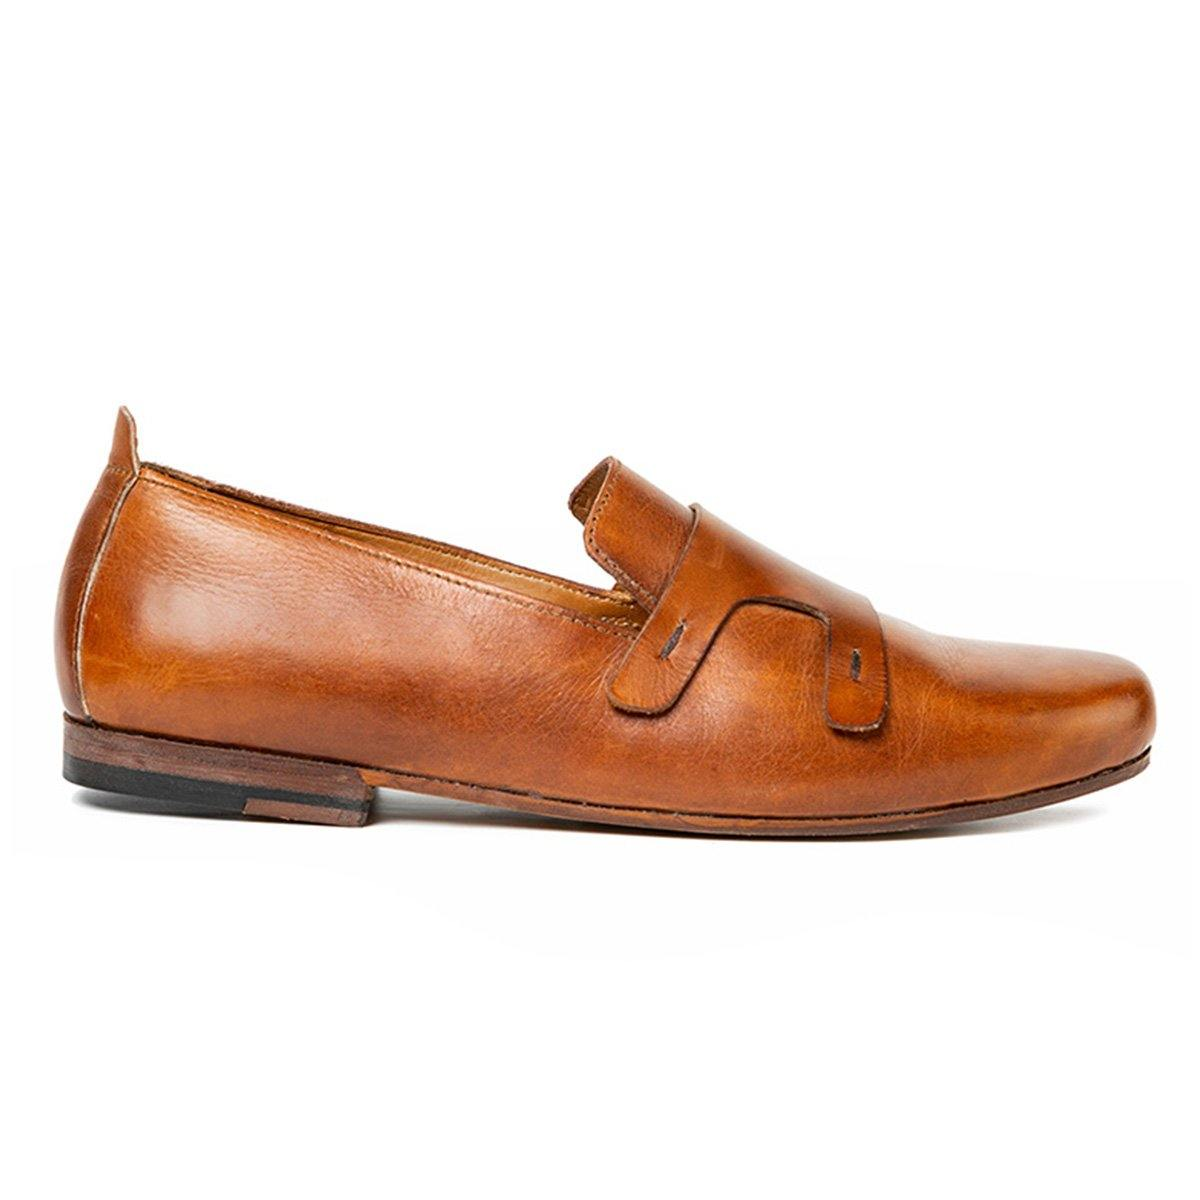 Oslo - Double Strap Loafers in Tan - TLC - The Leather Crafts